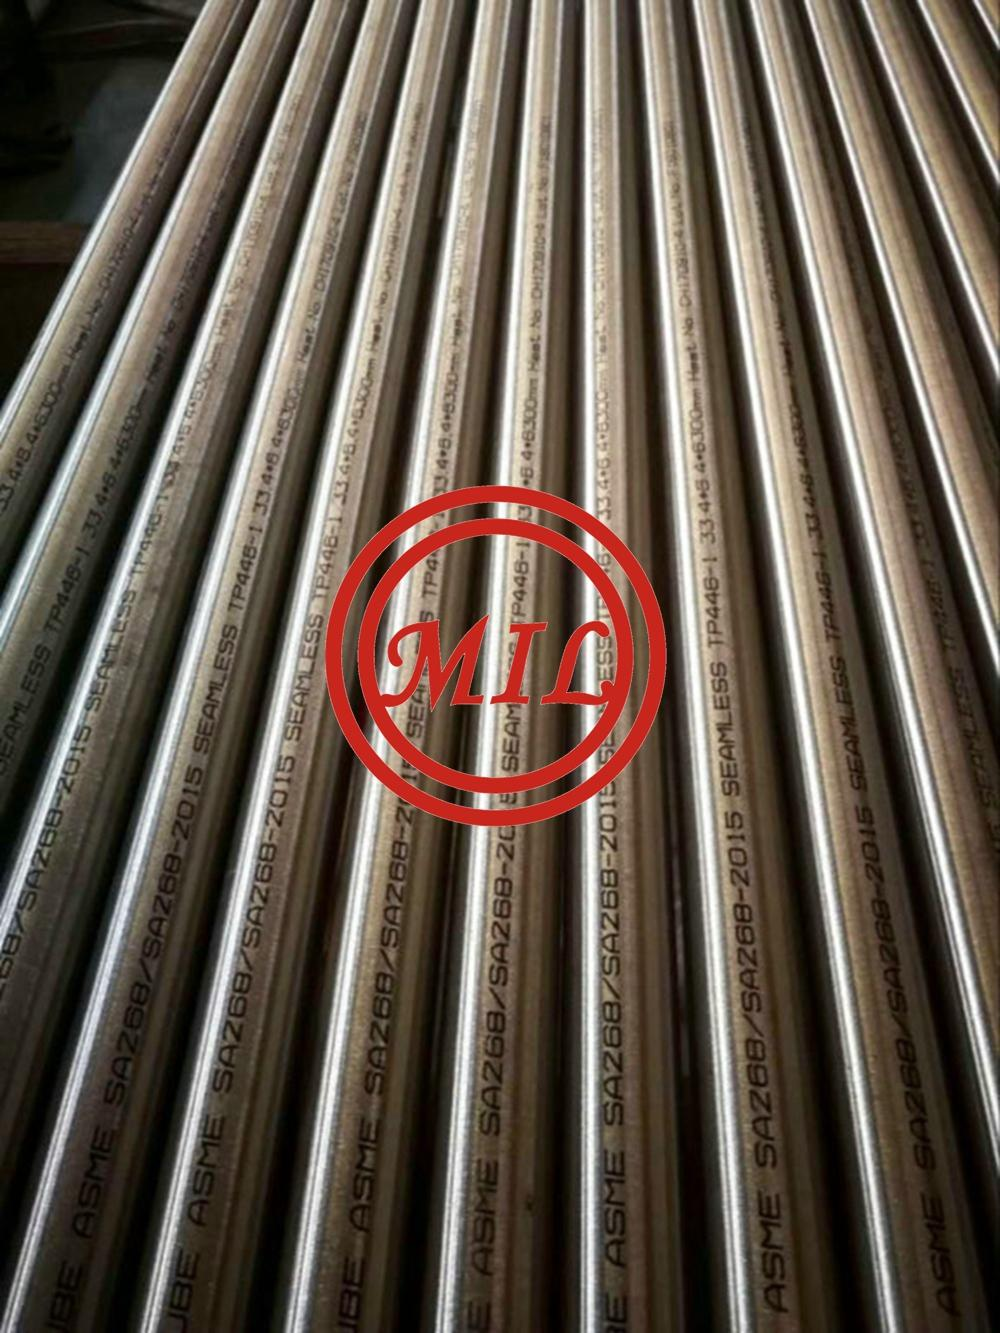 ASTM A268 TP446-1 High Chromium Ferritic seamless Stainless Steel Pipe, UNS S44600 Pipe 1.4762 tube